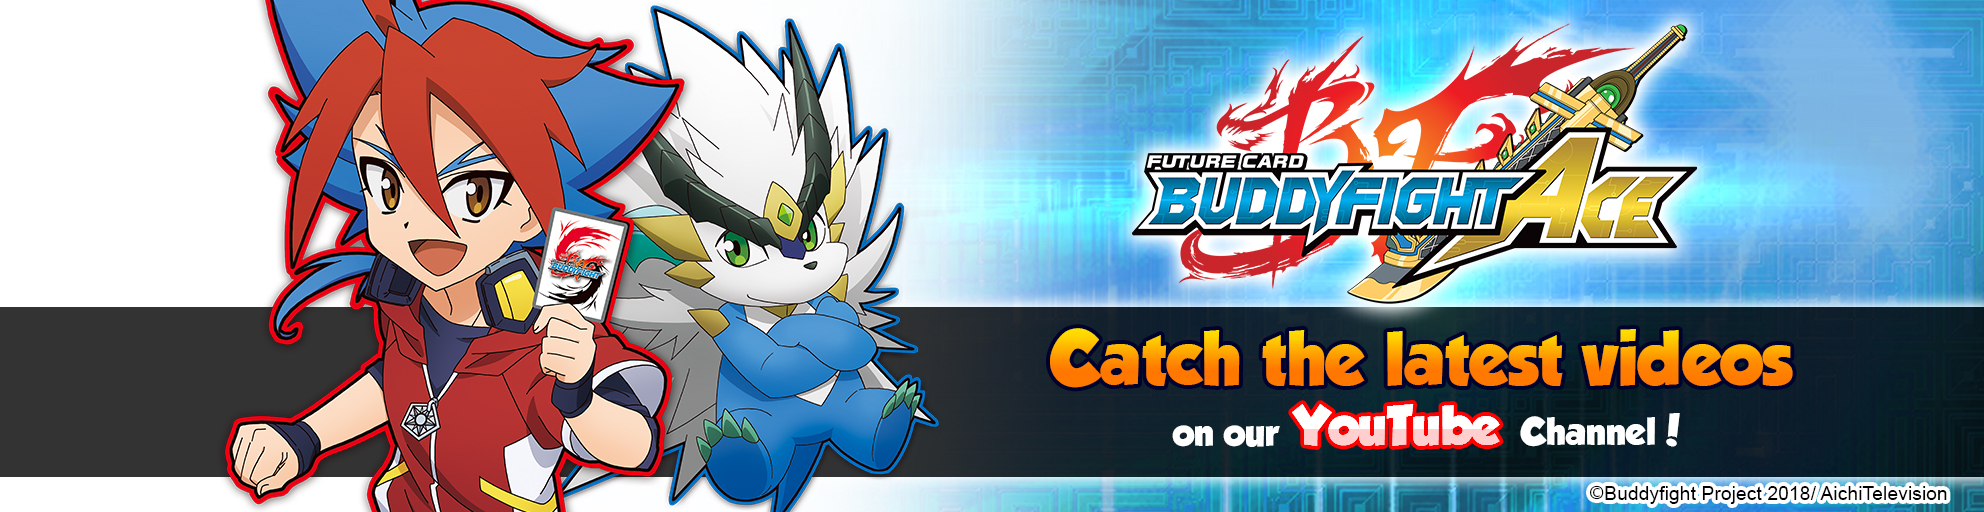 Future Card Buddyfight Ace New Videos on YouTube